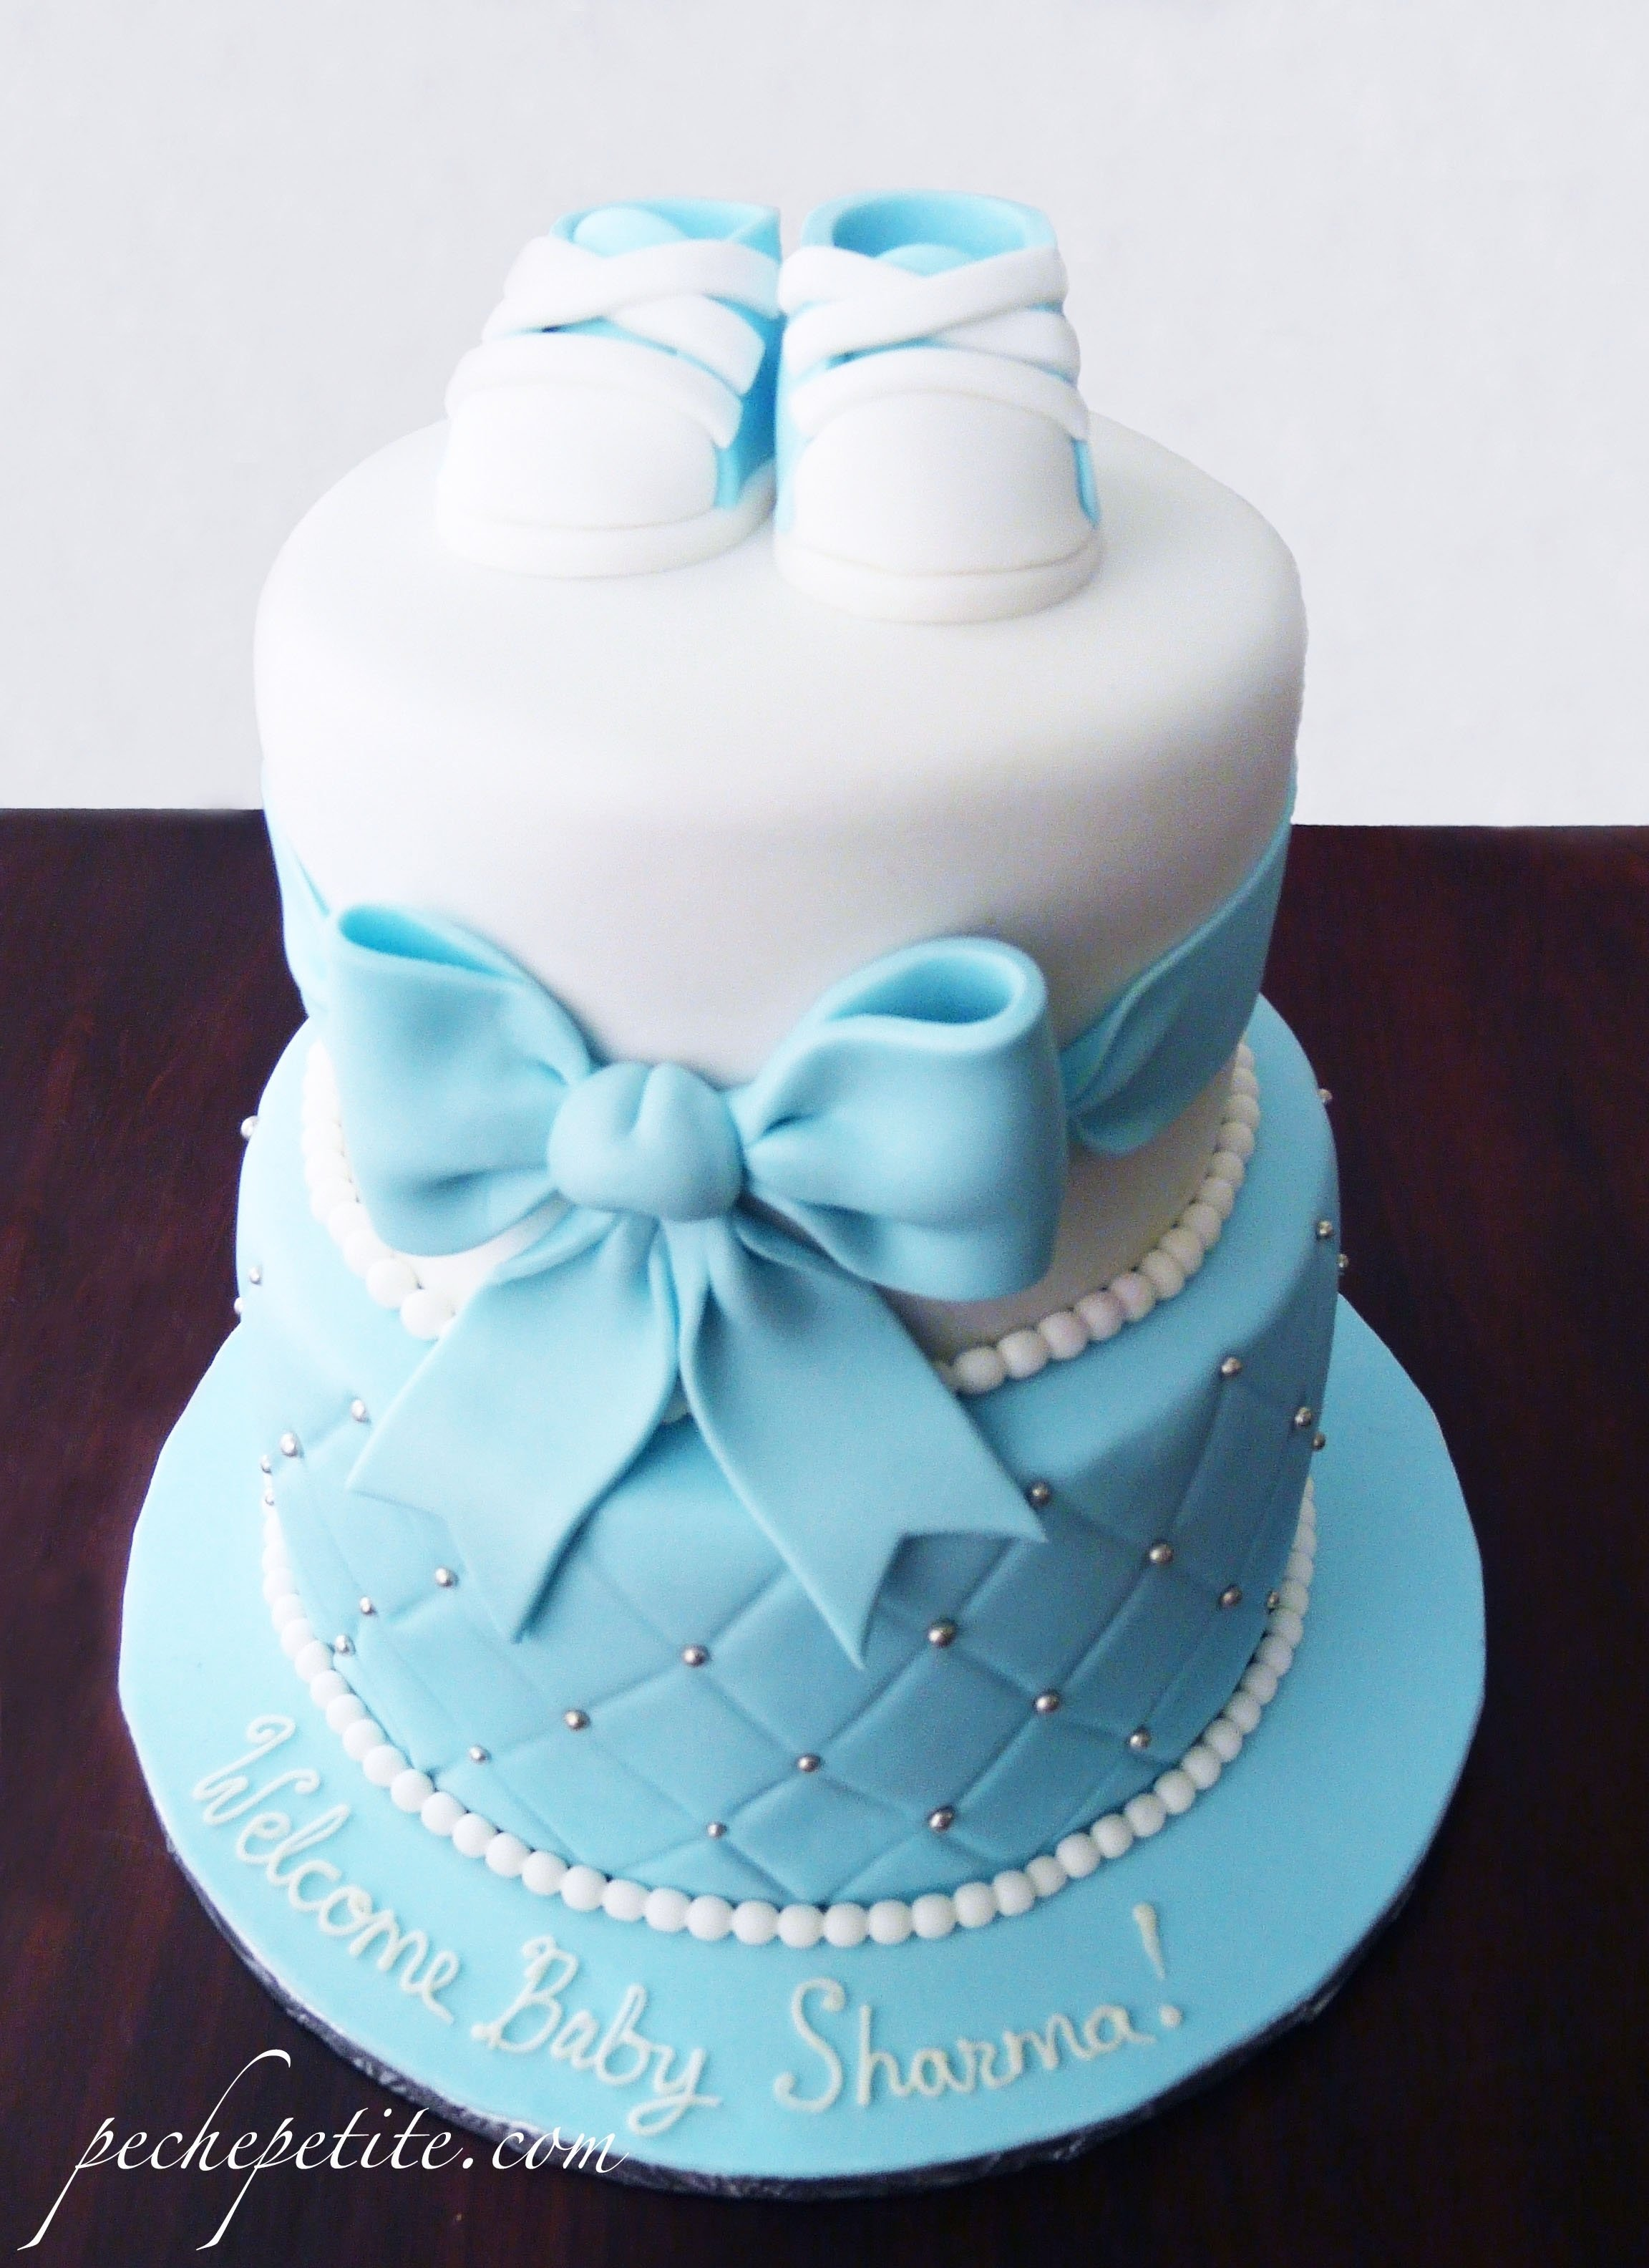 10 Stunning Baby Boy Baby Shower Cake Ideas babyhower cake ideas boy inscription for twin and girl cupcakeports 2020